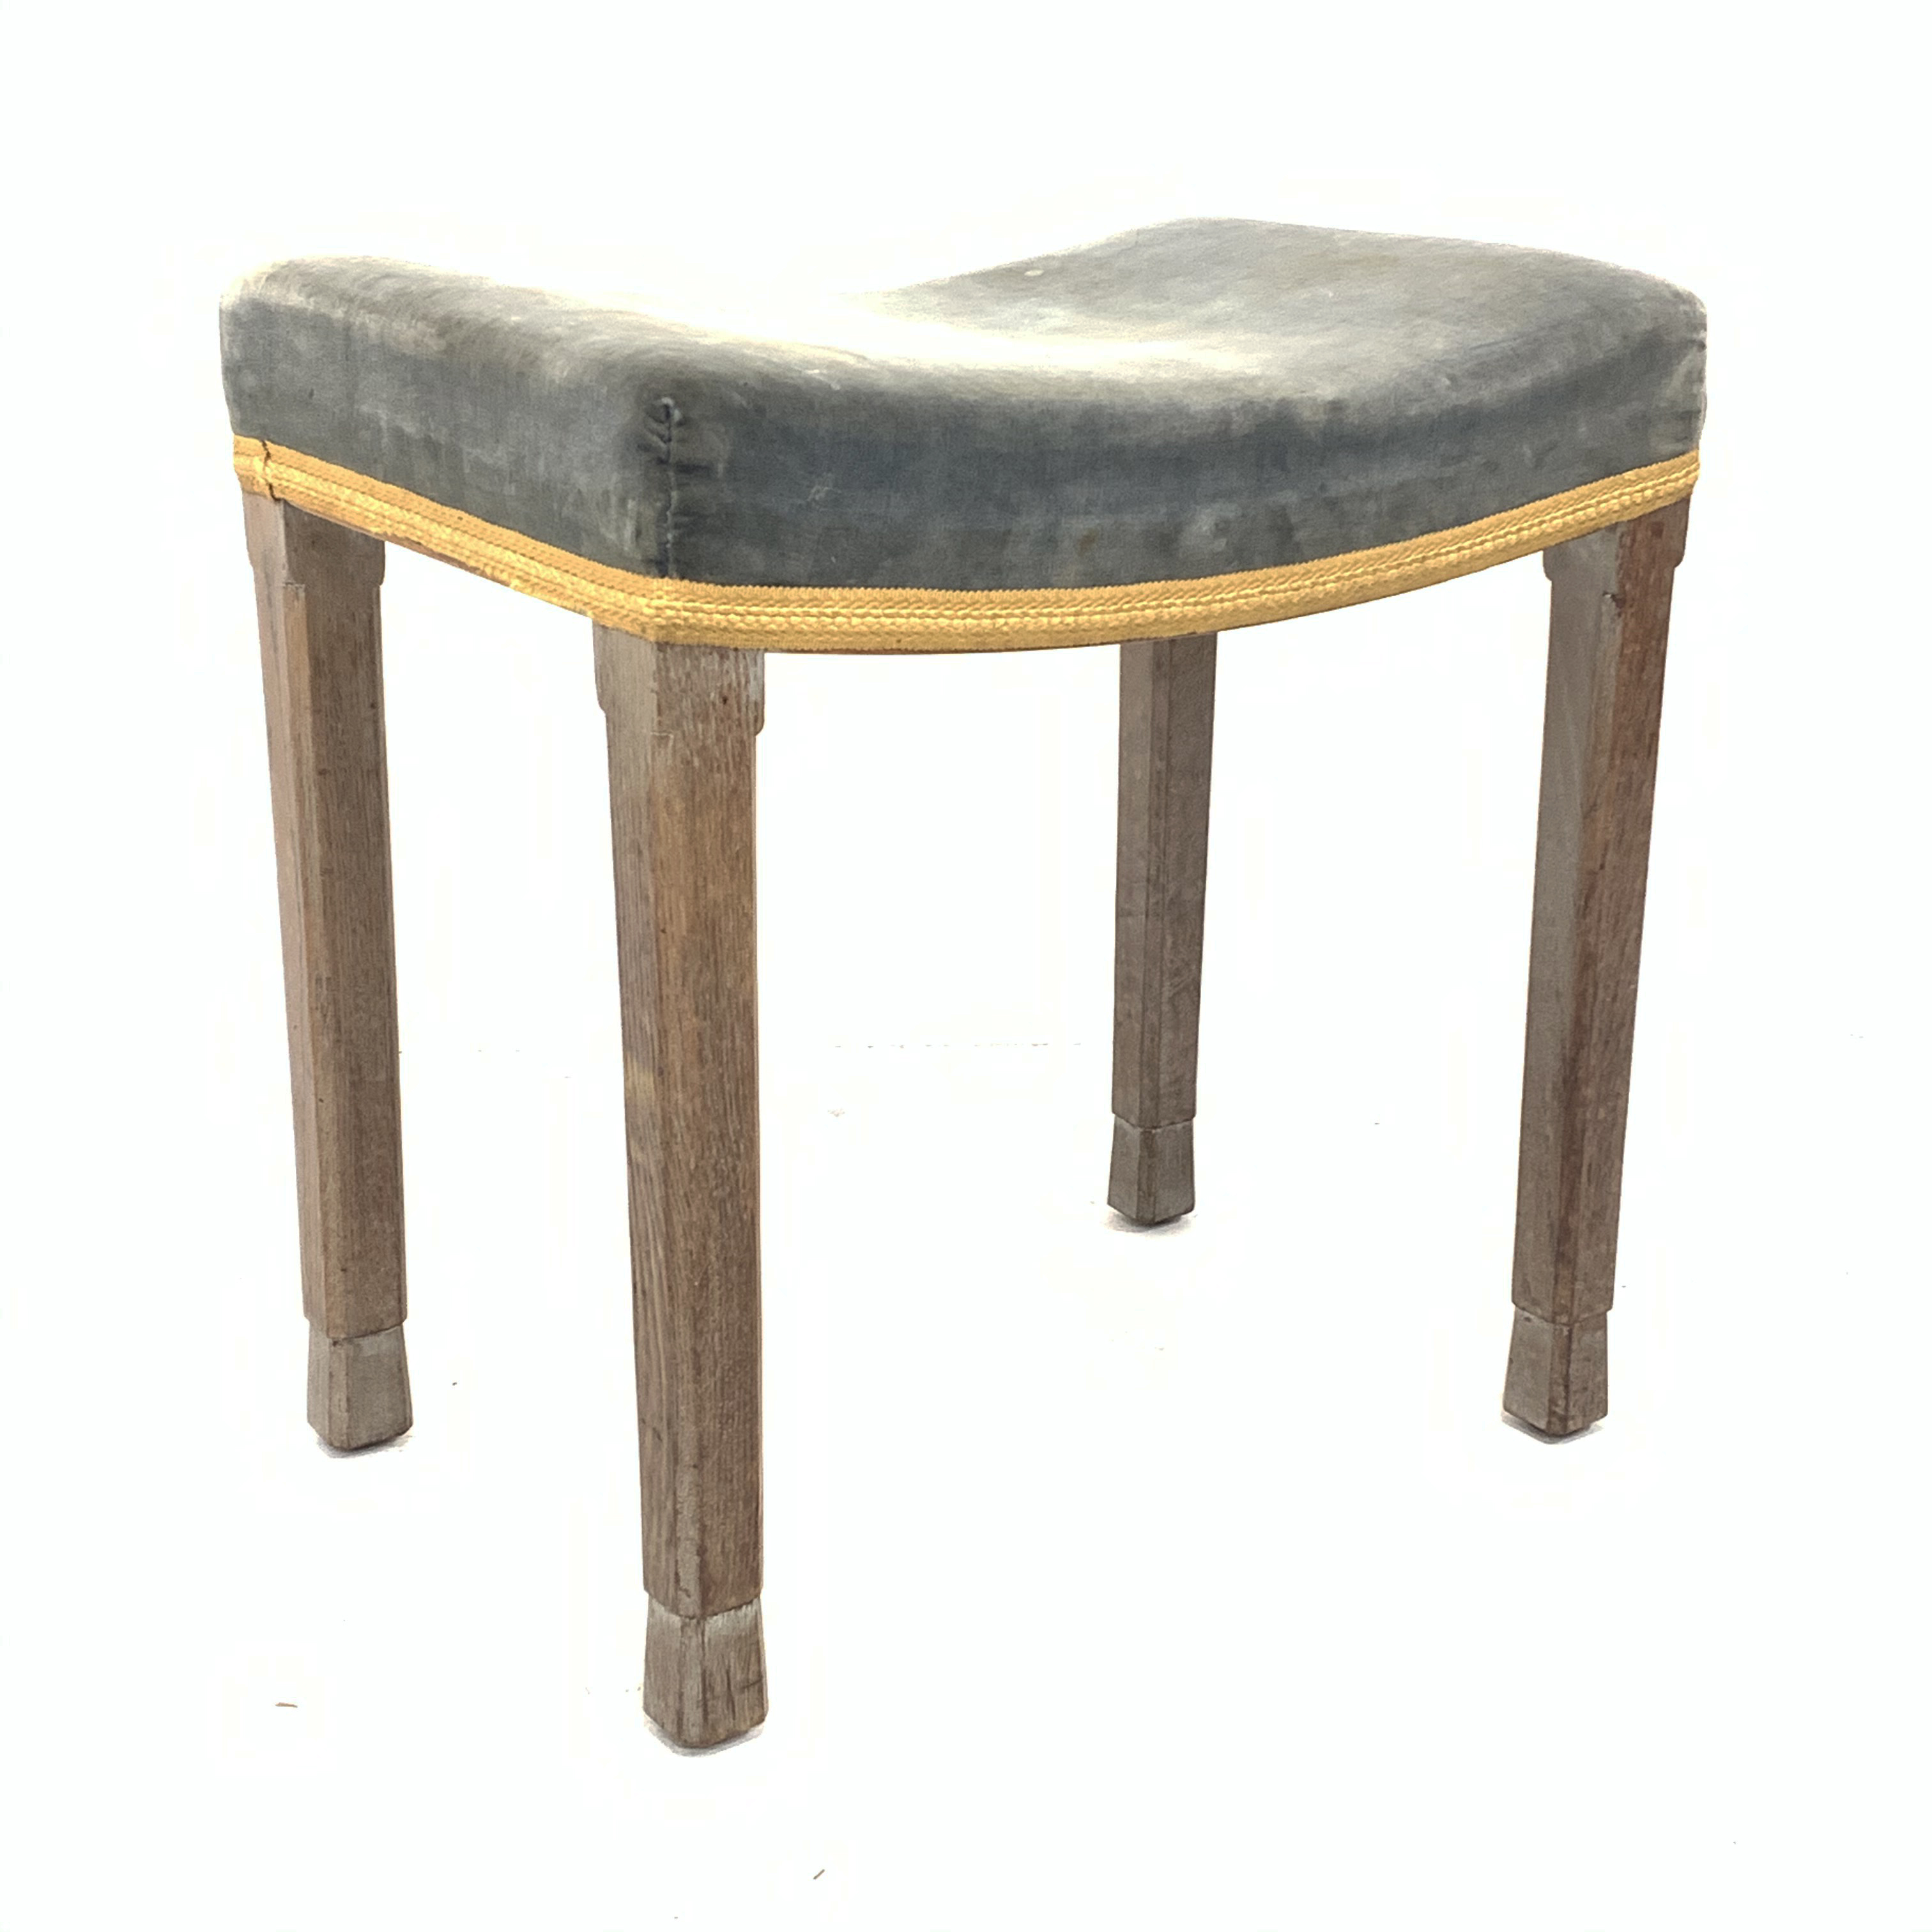 Elizabeth II limed oak Coronation stool with upholstered seat, stamp to the interior seat rail, with